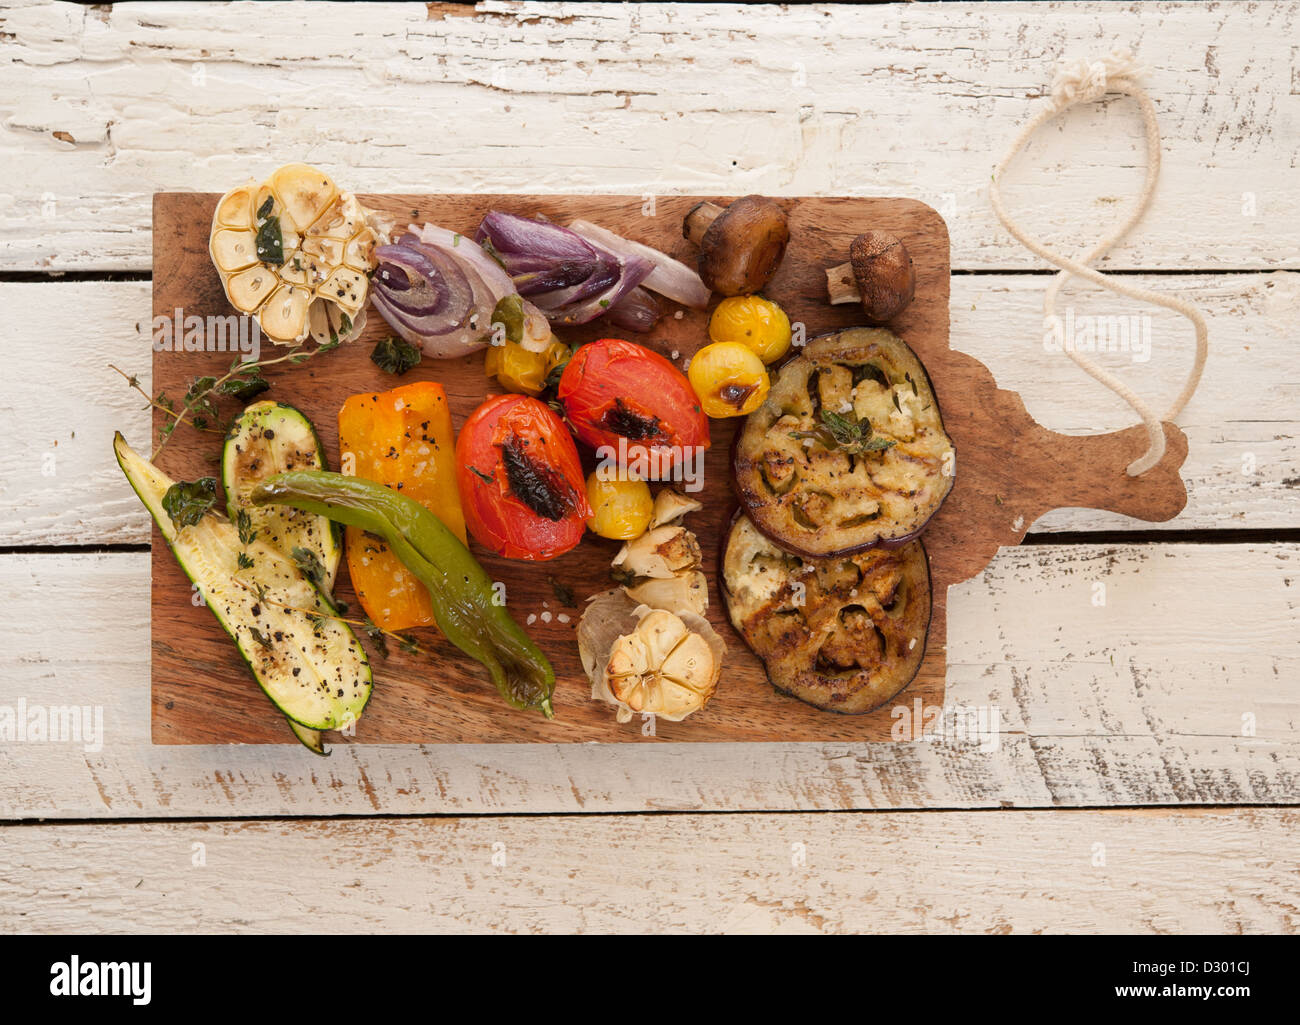 Anti Pasta On A Wooden Plate A Stylish Food Photography Stock Photo Alamy